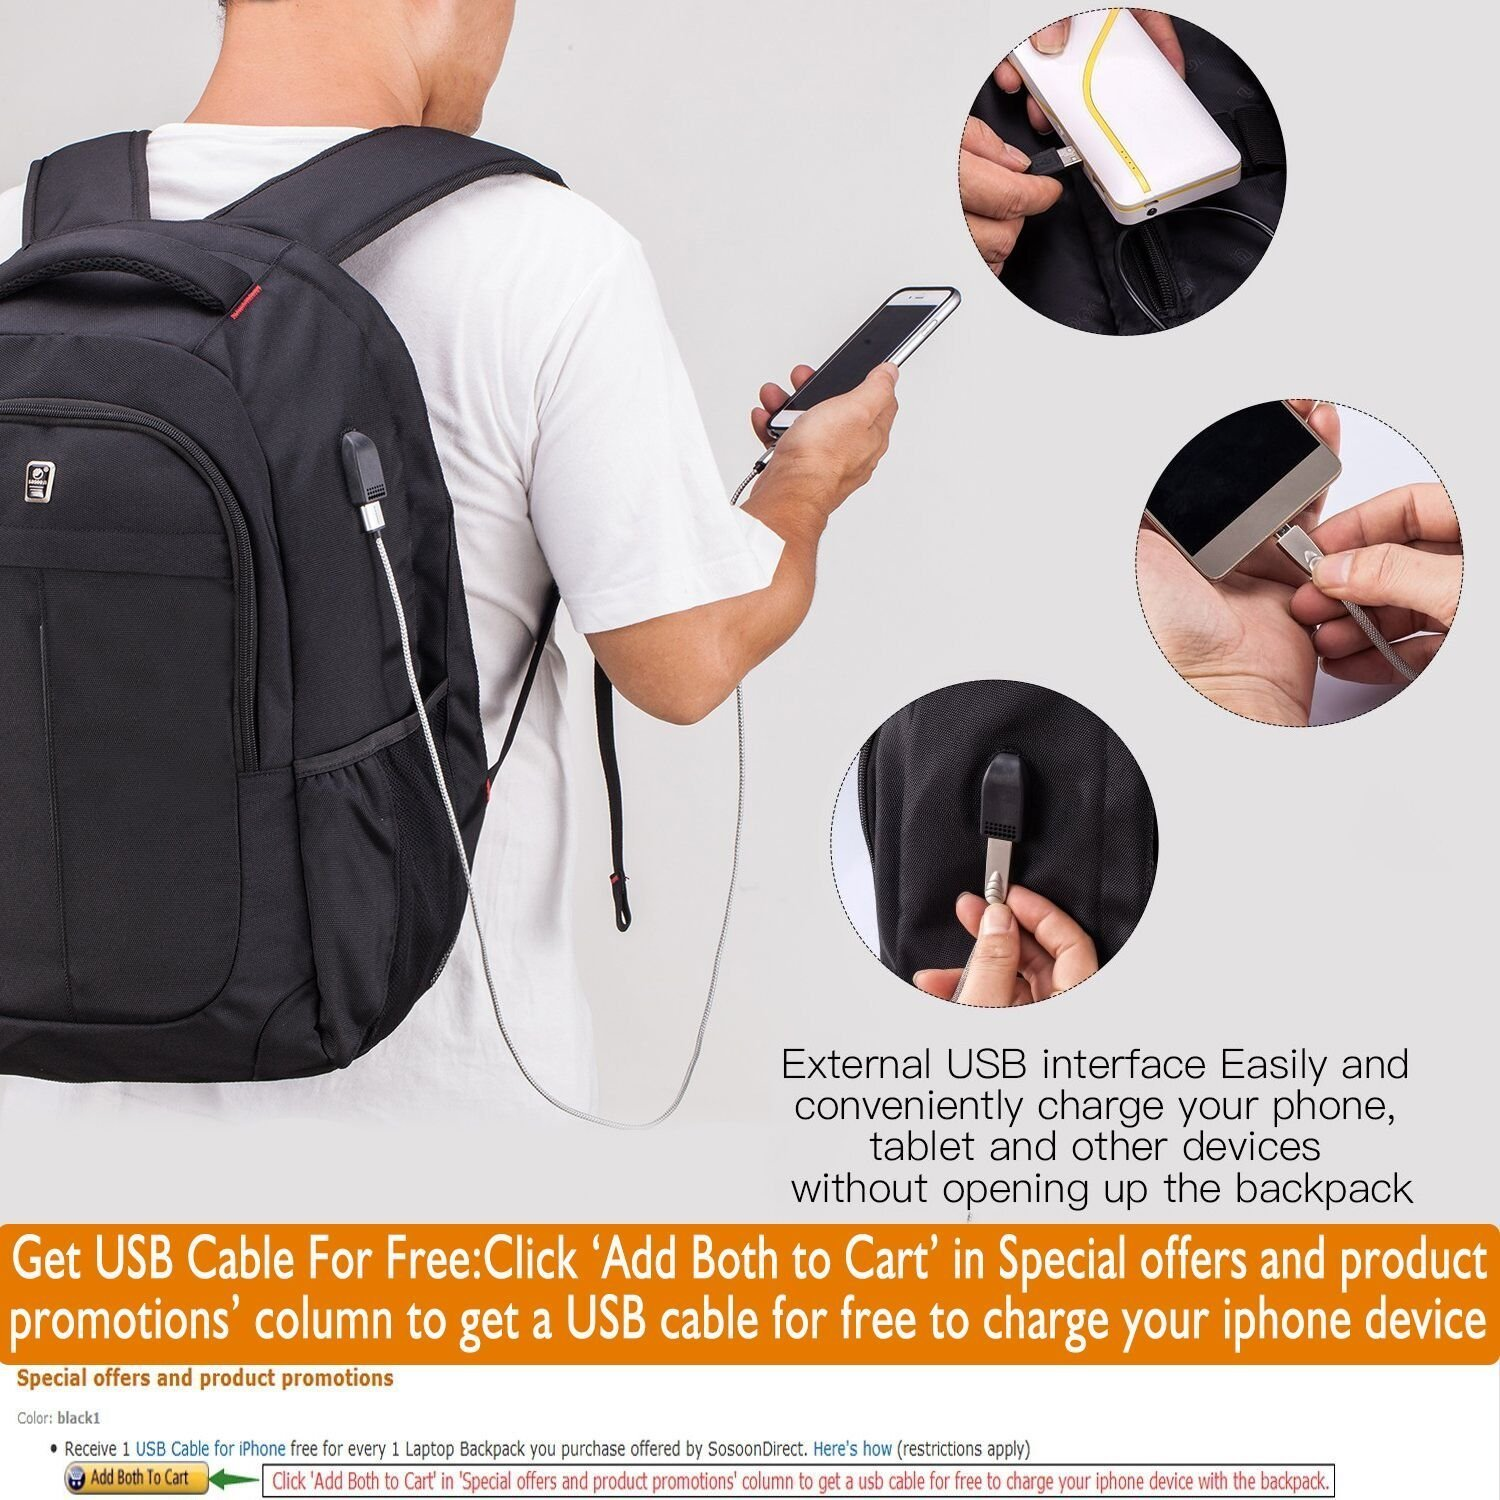 Sosoon Laptop Backpack, 17.3 Inch Laptop Backpack with USB Charging Feature for Android, Get Free USB Cable in Applicable Promotion Or Special Offers and Product Promotions If Charging for iPhone